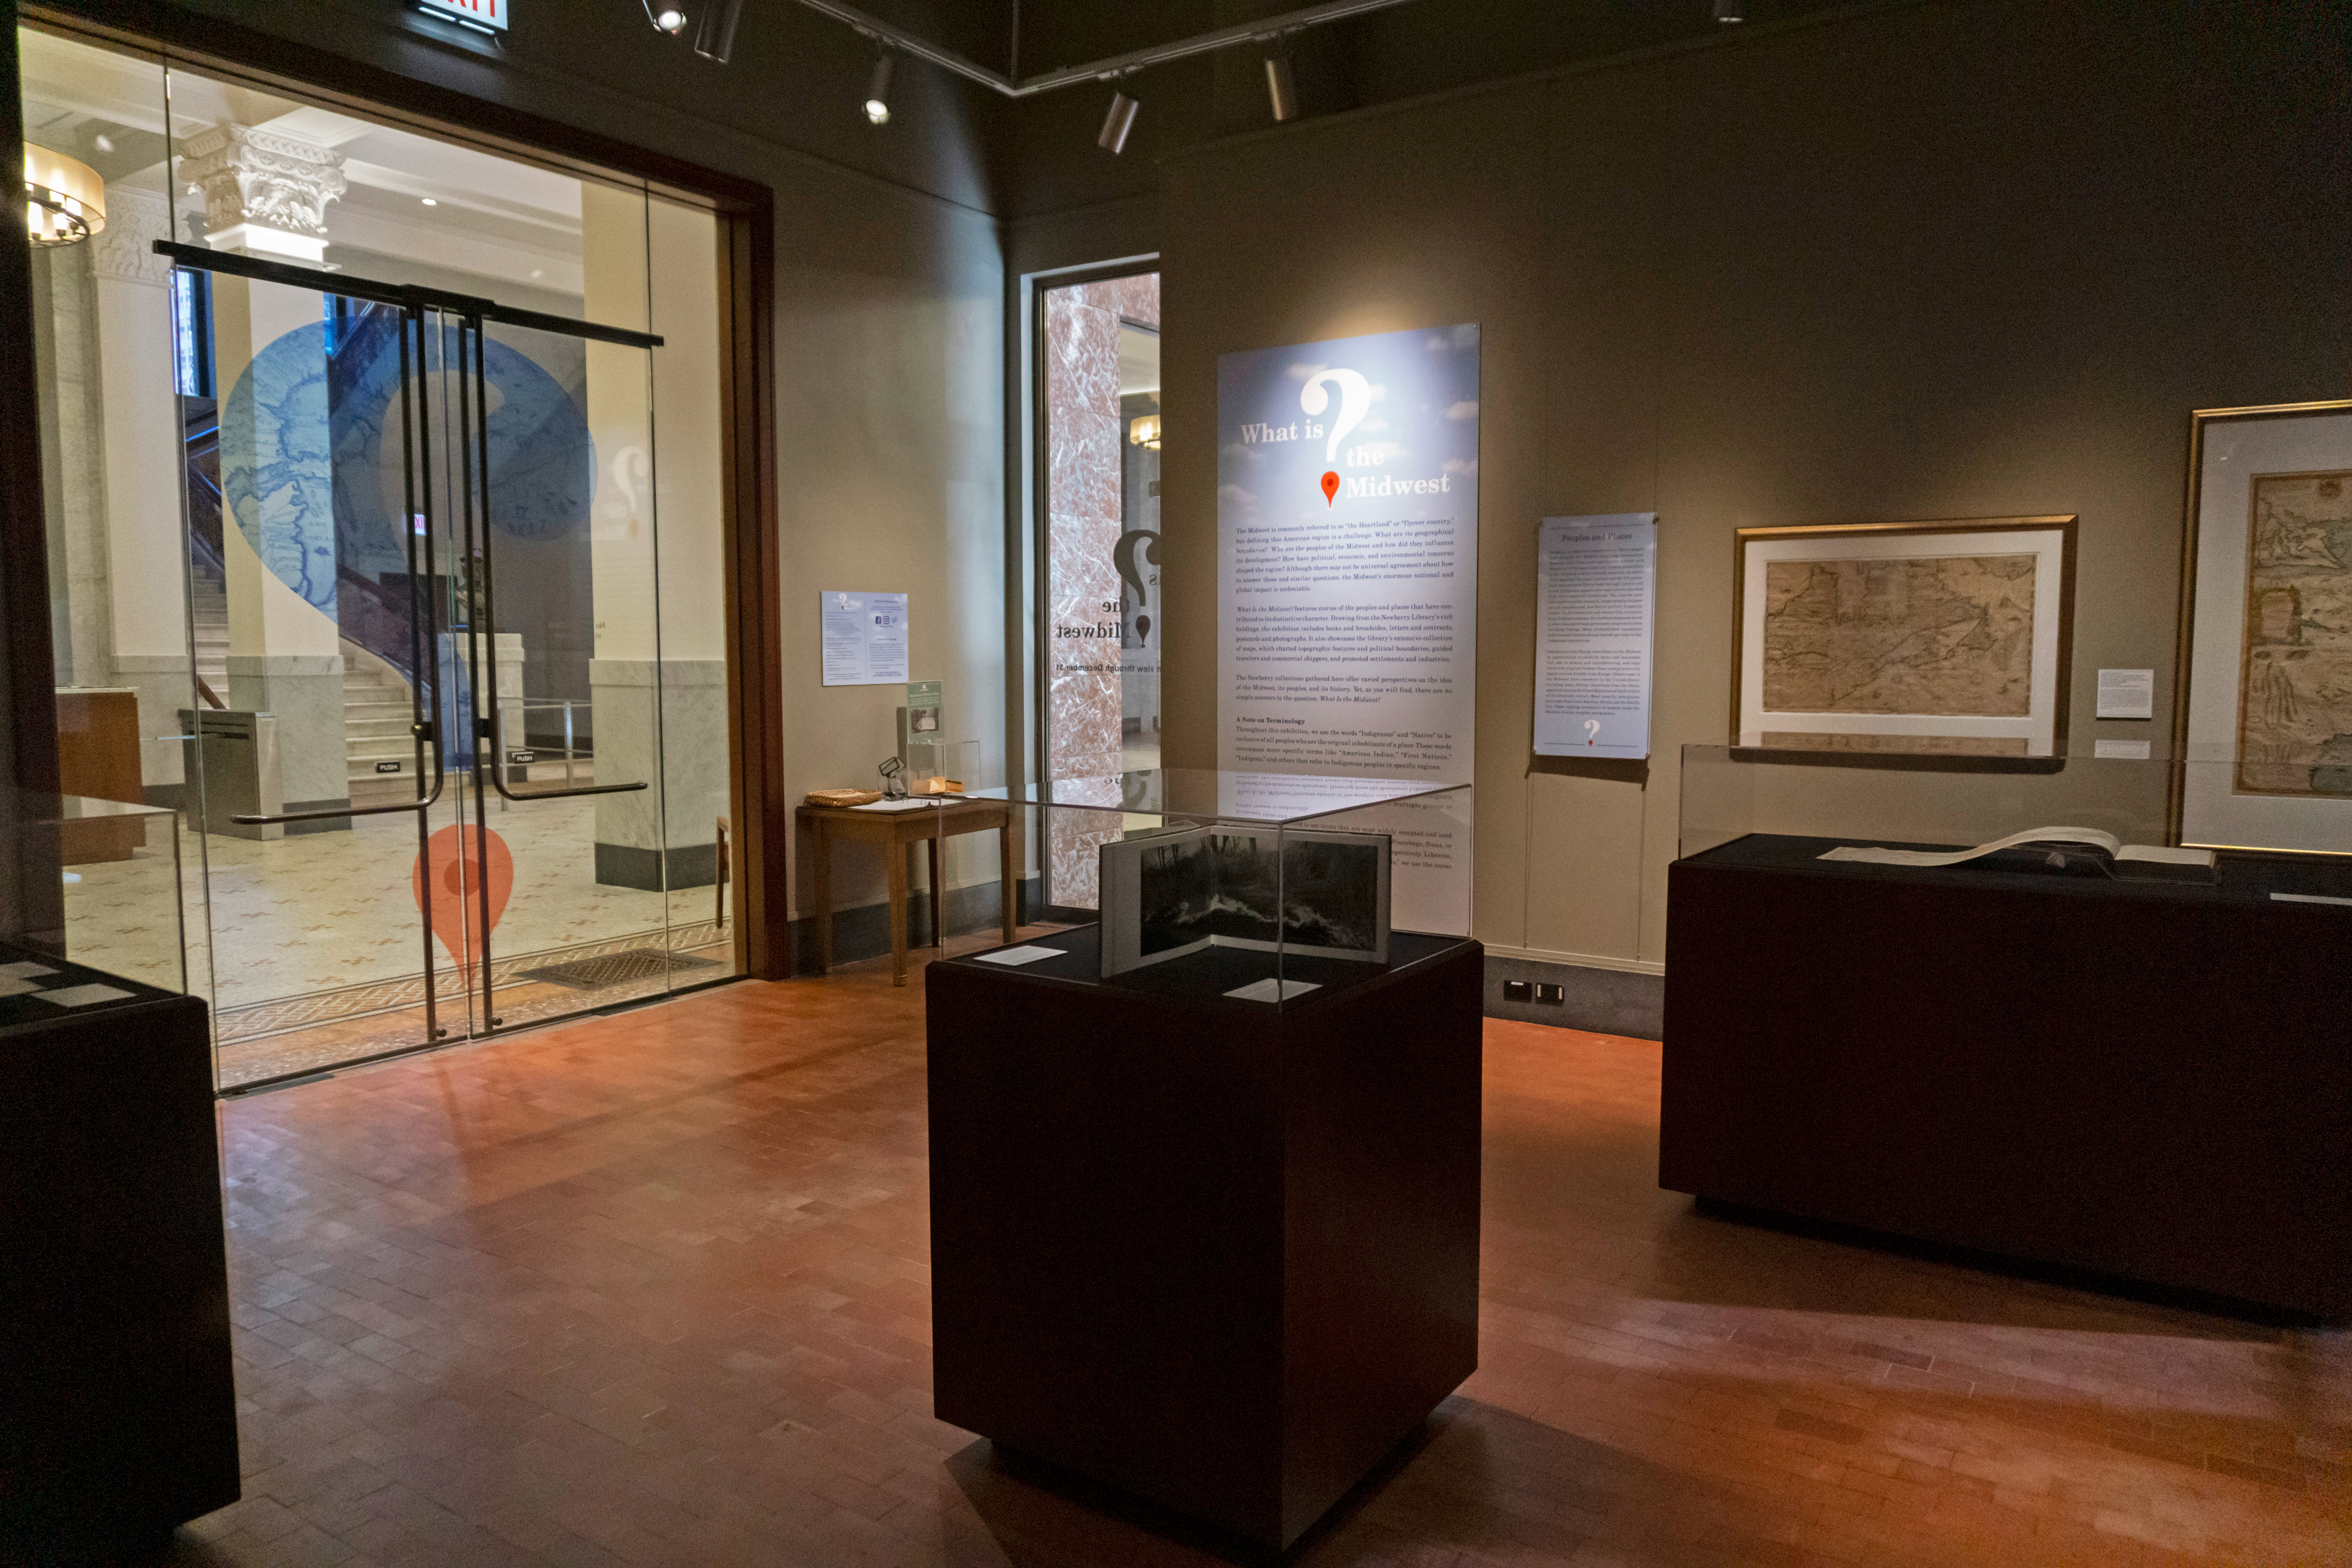 Landscape of What is the Midwest? exhibition at The Newberry Library